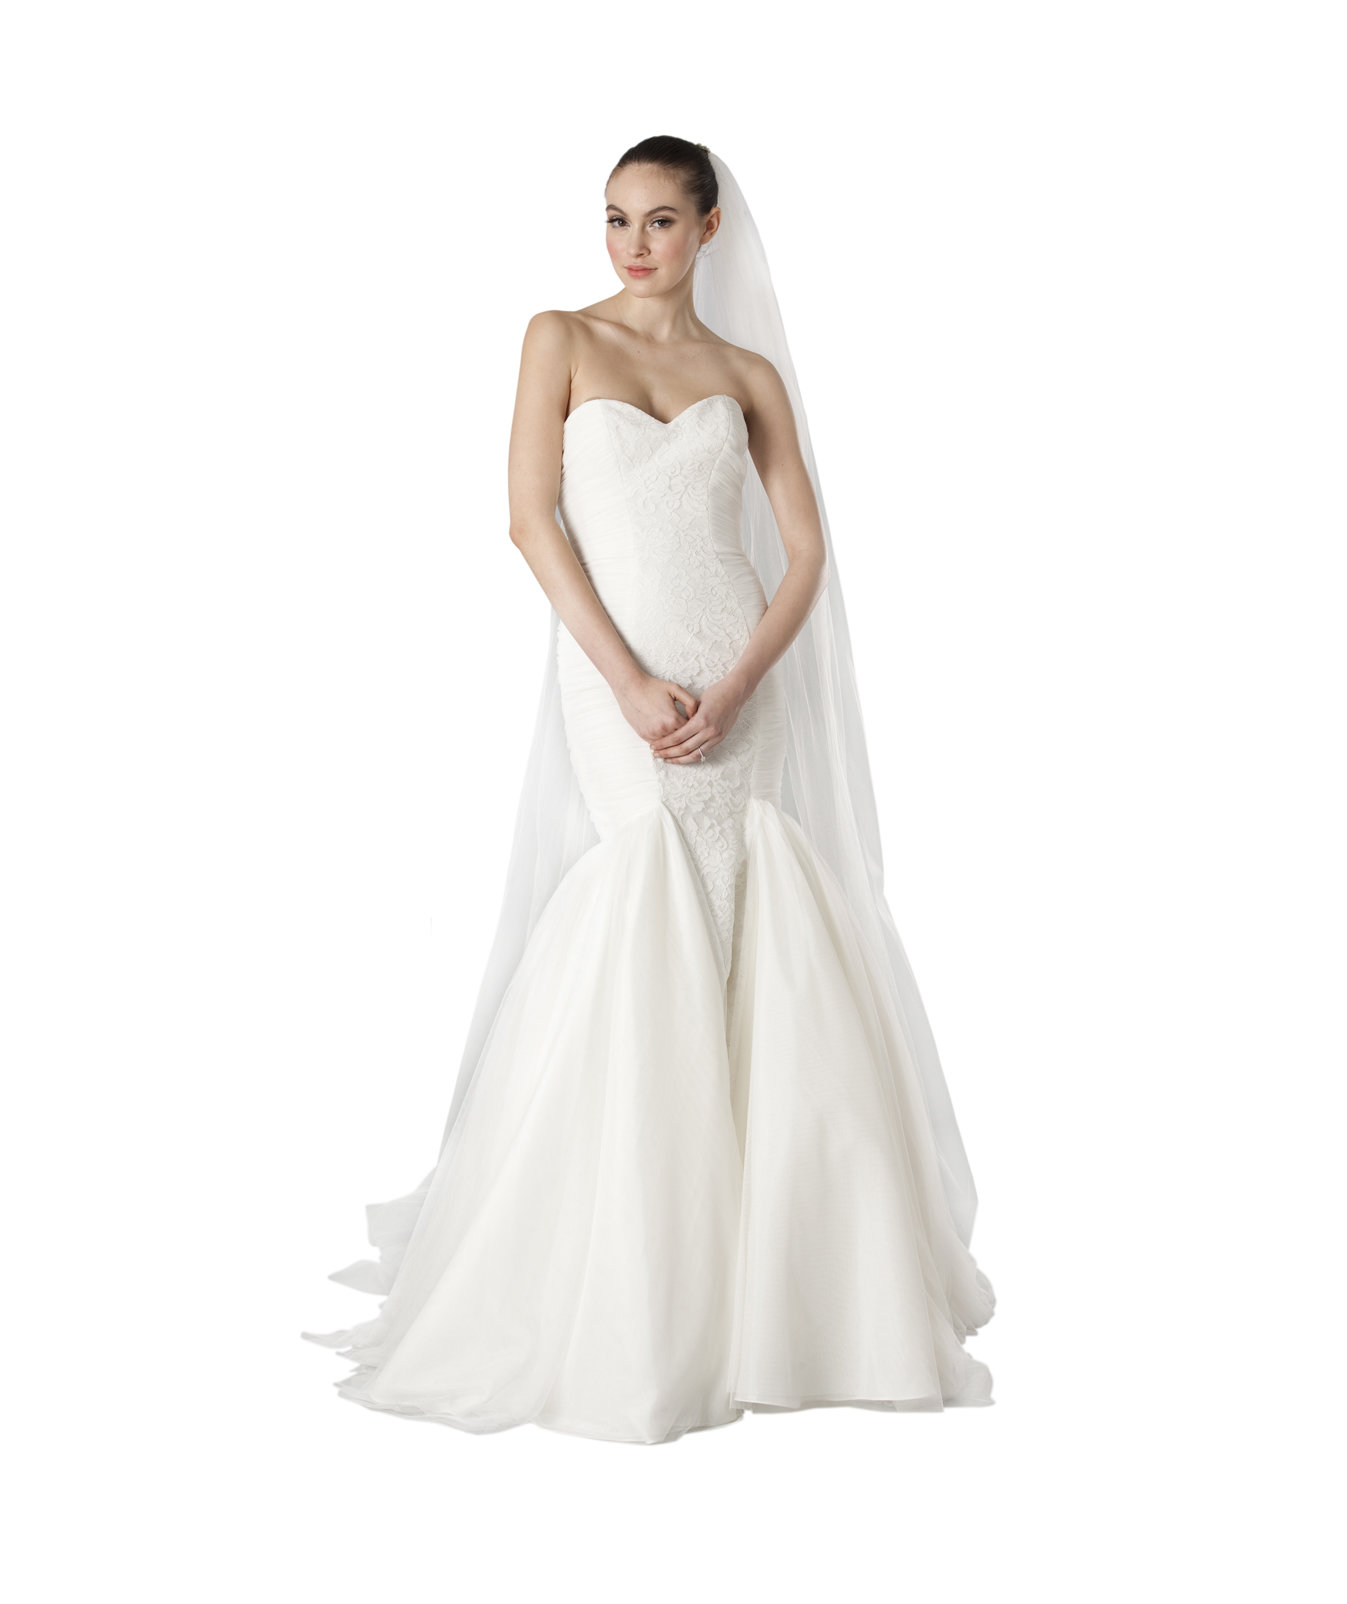 Theia faith stunning off the rack wedding dresses for Where to buy off the rack wedding dresses